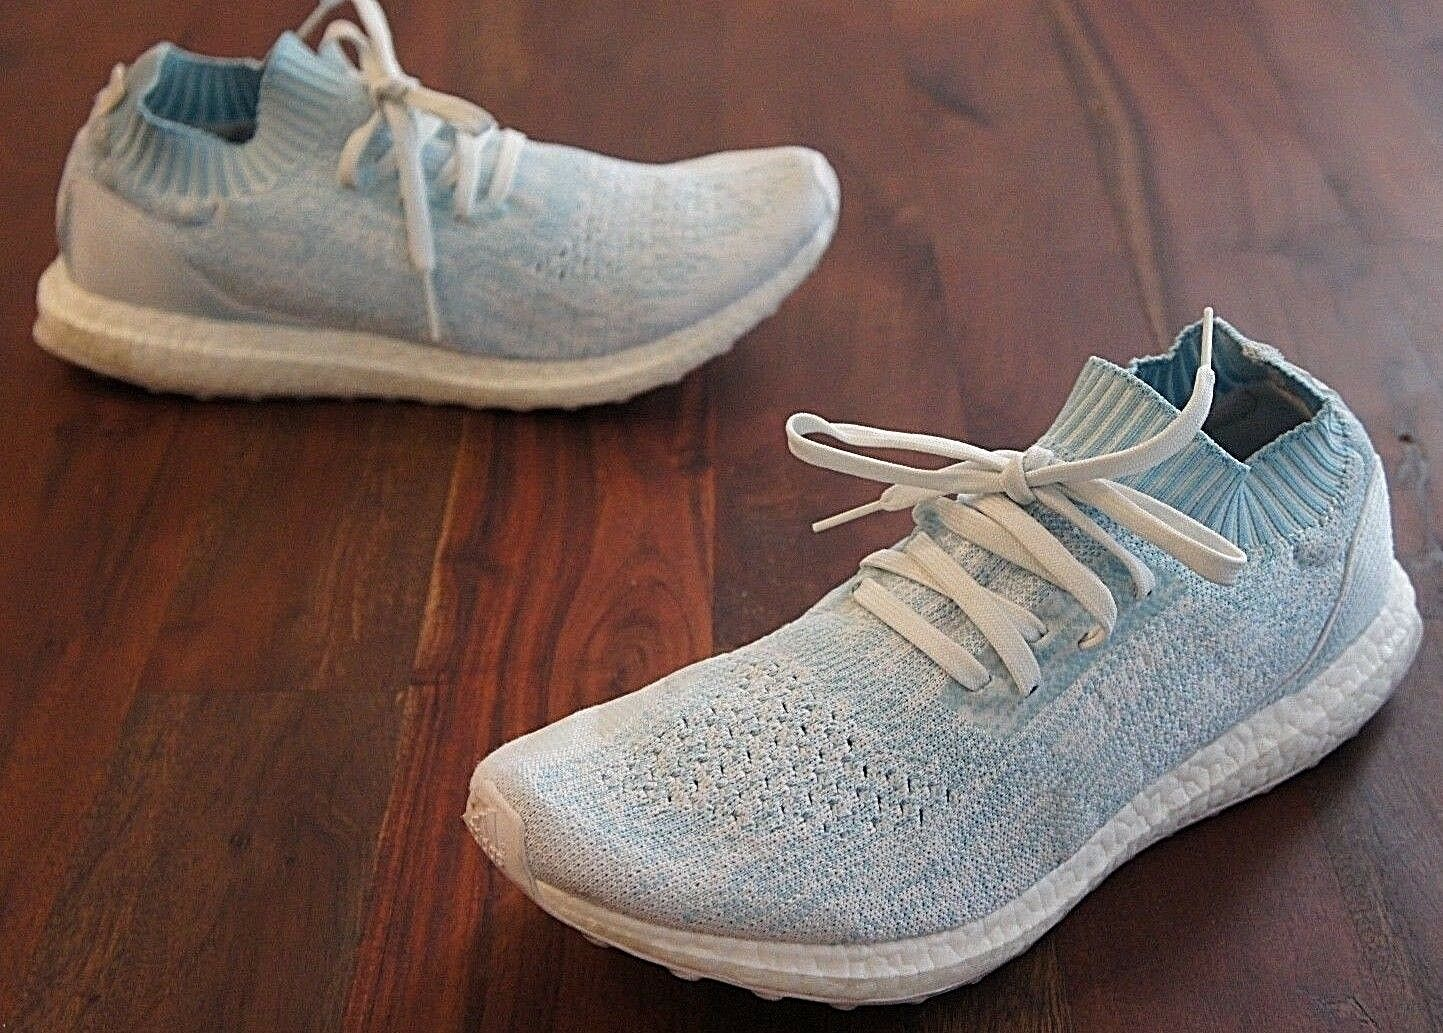 ADIDAS ULTRA BOOST UNCAGED PARLEY (Mens 11.5US)